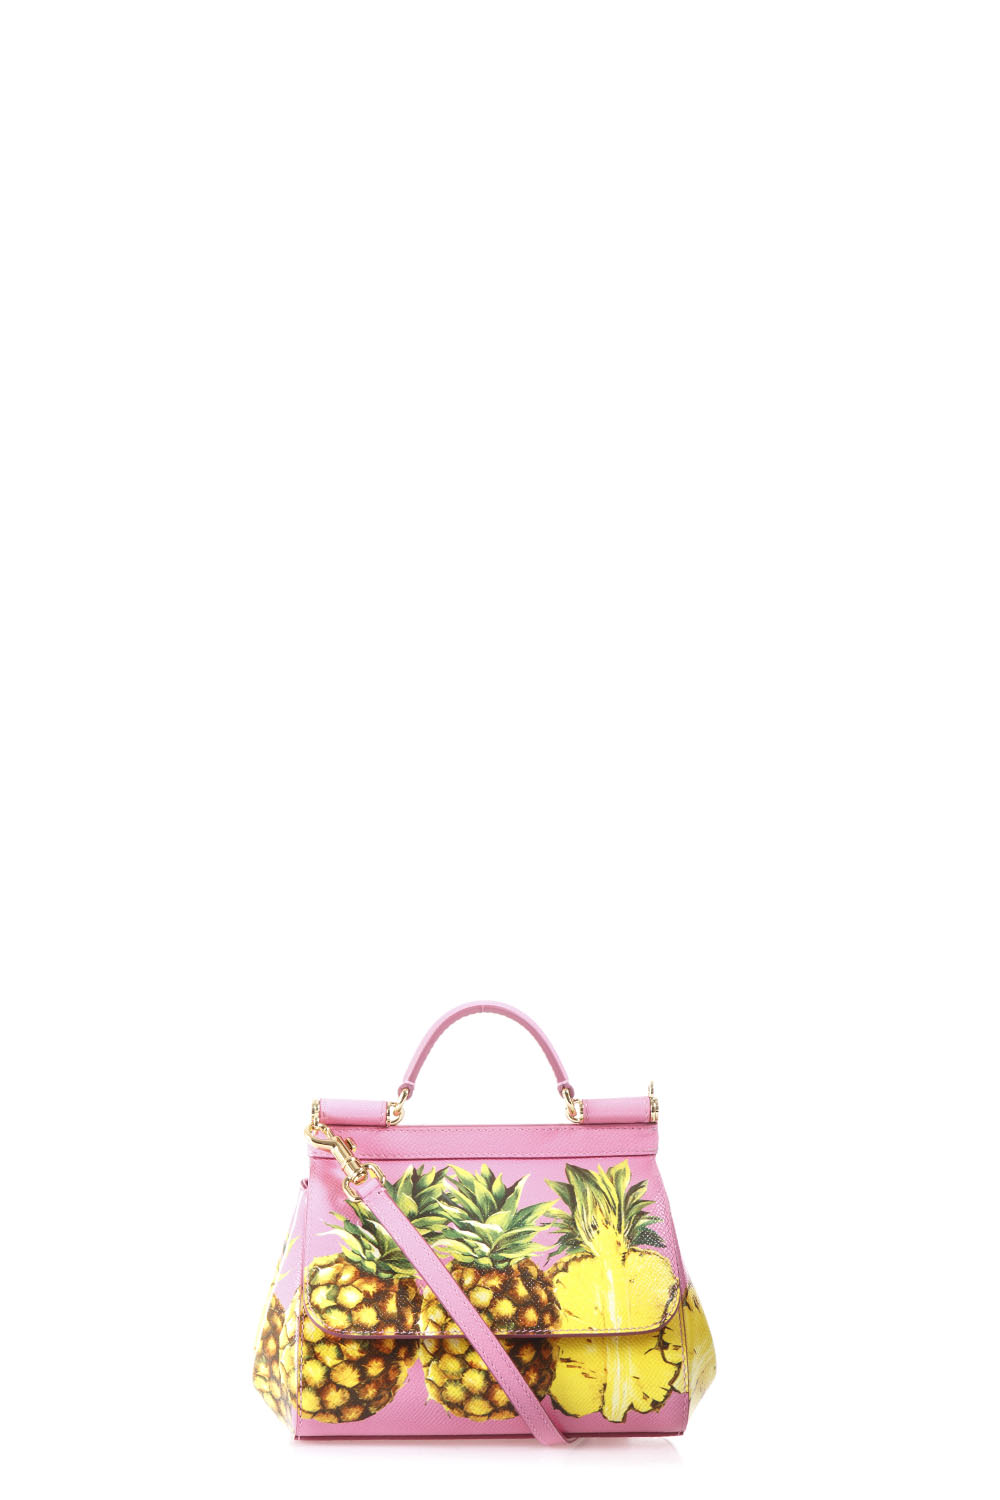 MINI SICILY PINEAPPLES LEATHER BAG - DOLCE   GABBANA - Boutique Galiano 59c51ec26a